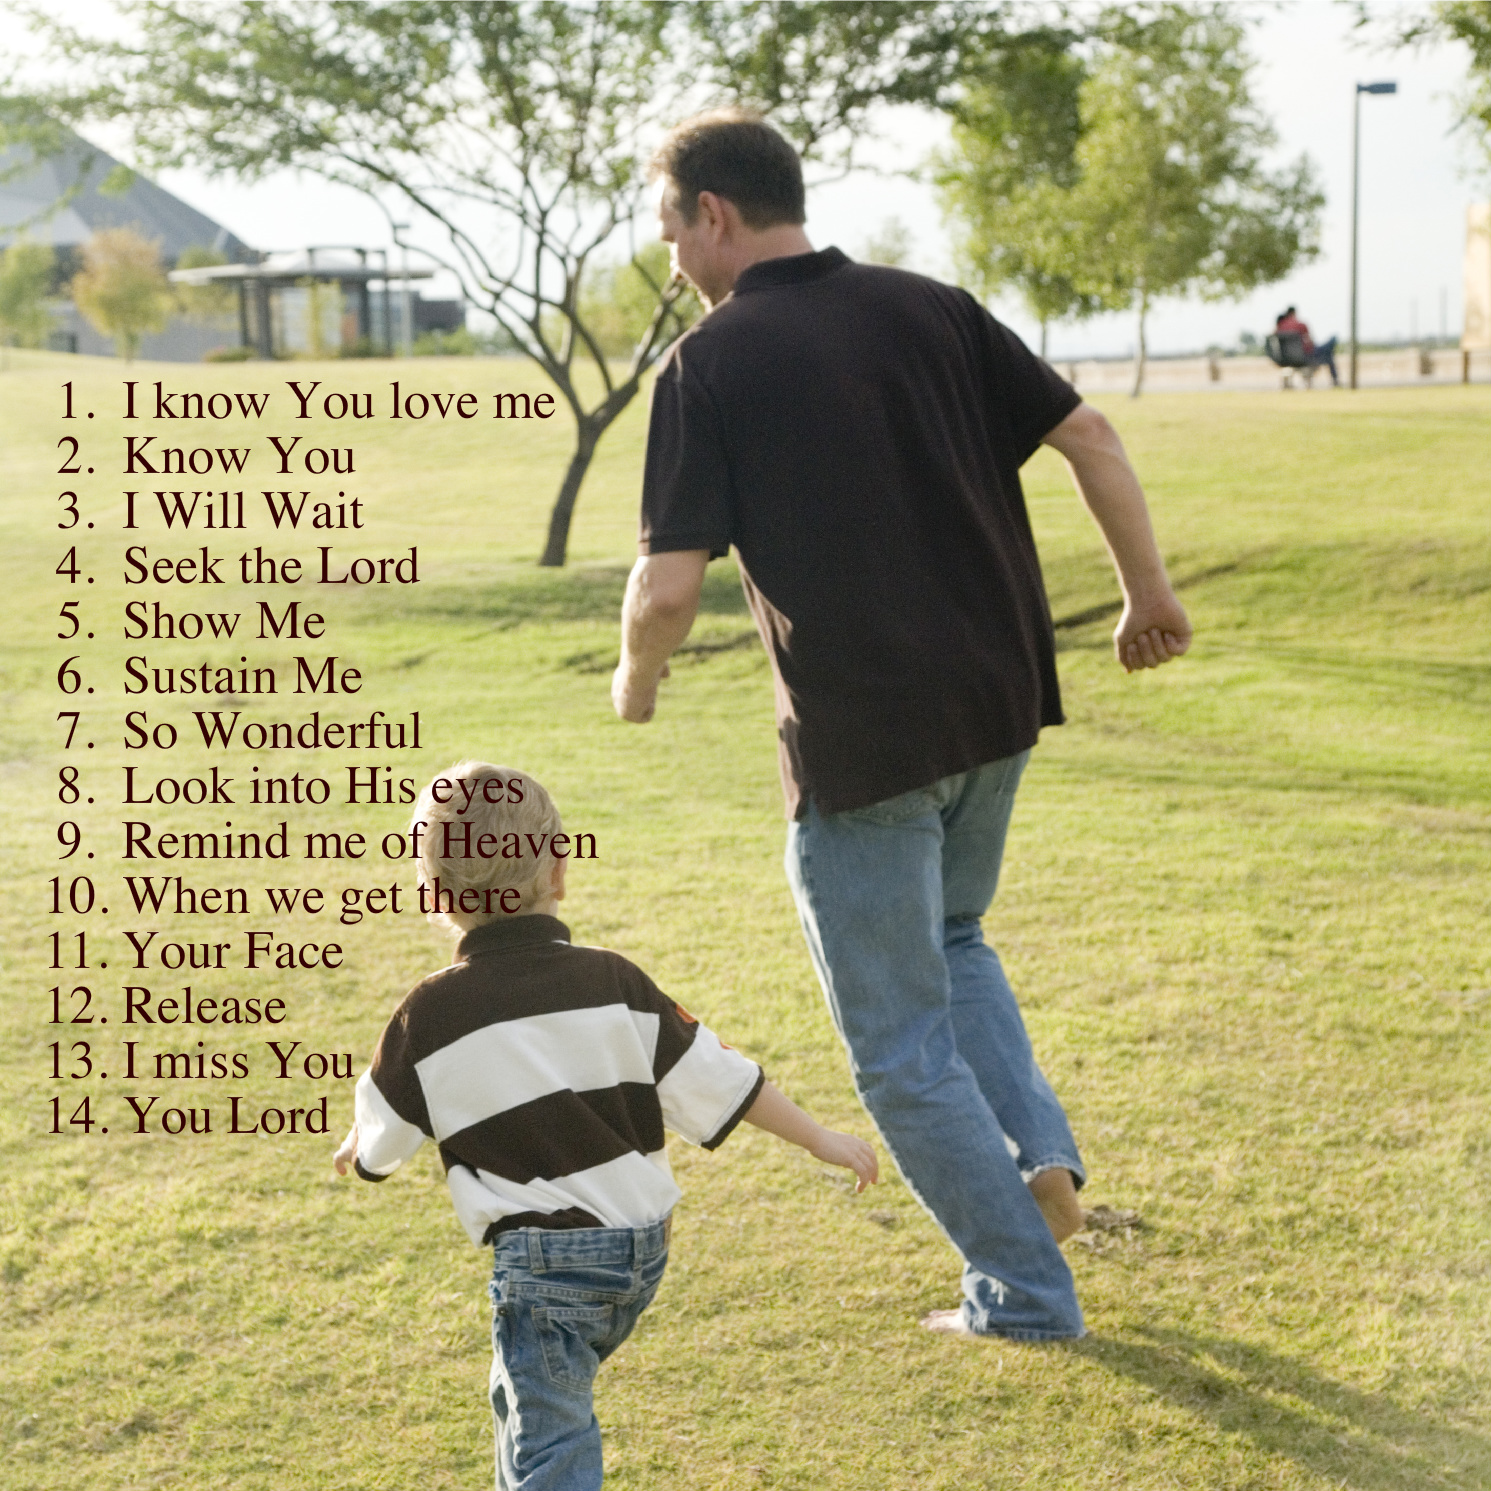 Know Him CD Cover 4 (2013_10_21 16_17_22 UTC)